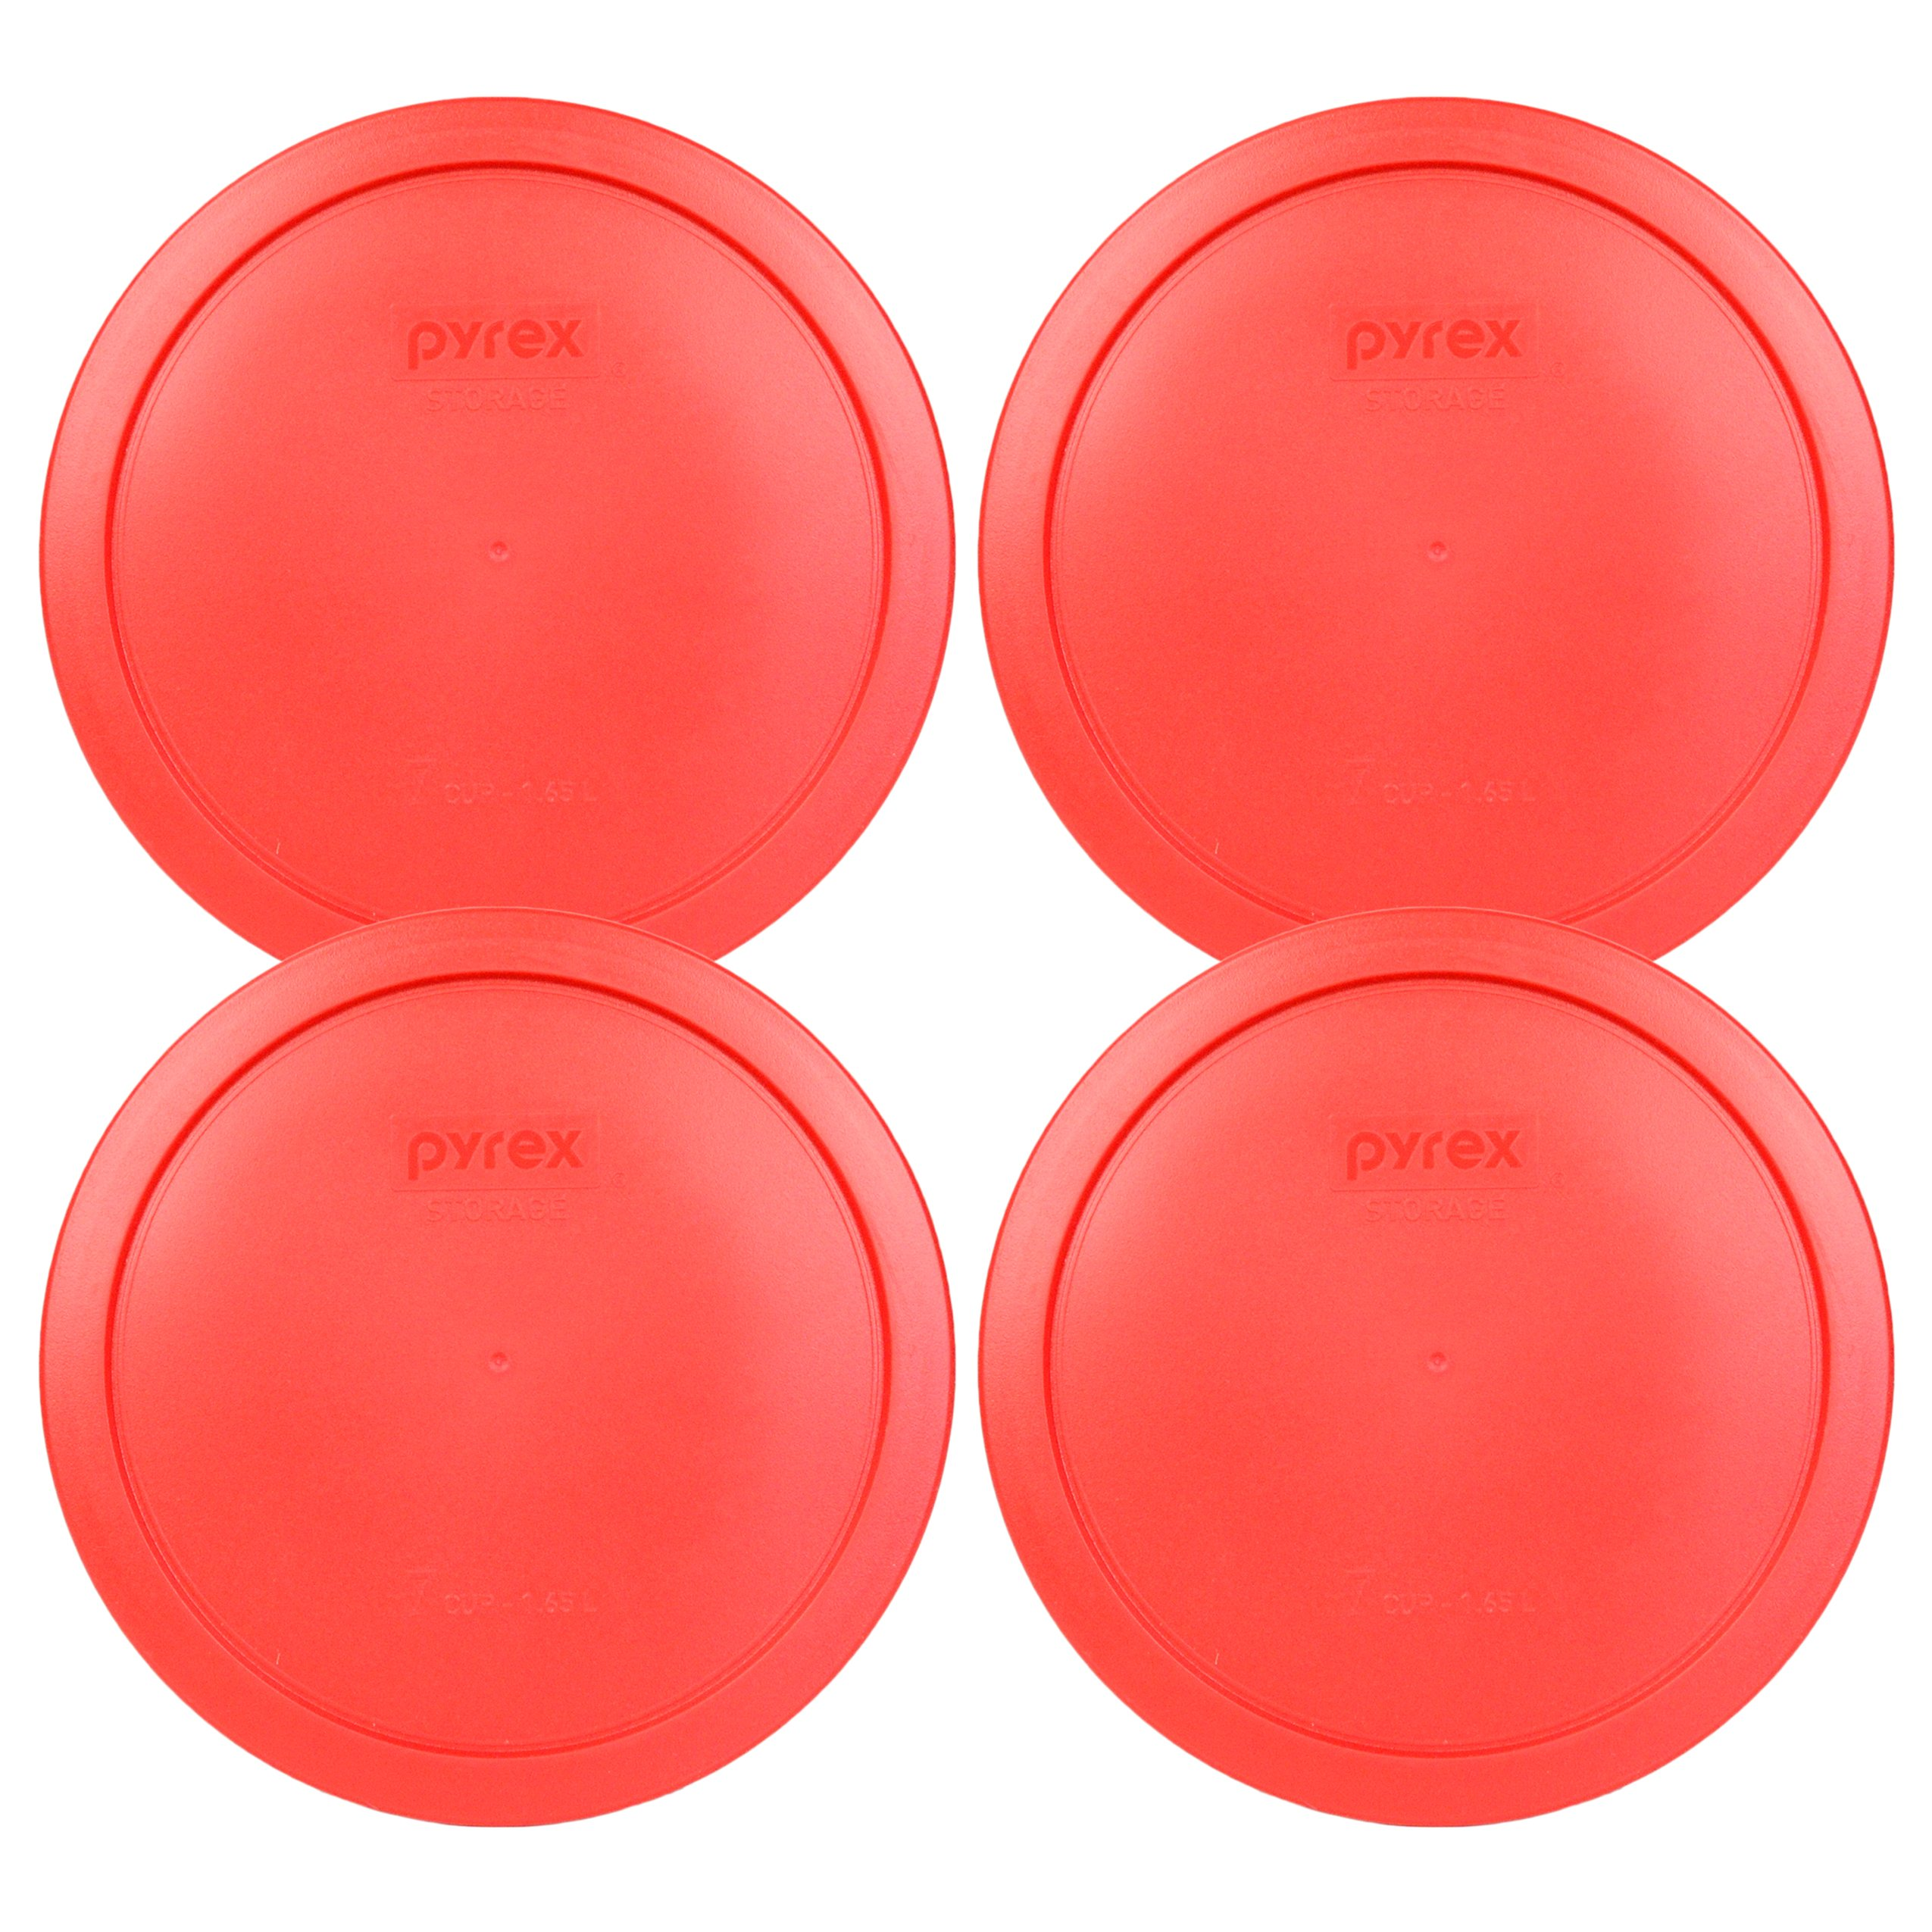 Pyrex 7402-PC Red Round Storage Replacement Lid Cover fits 6 & 7 Cup 7'' Dia. Round (4-Pack) by Pyrex